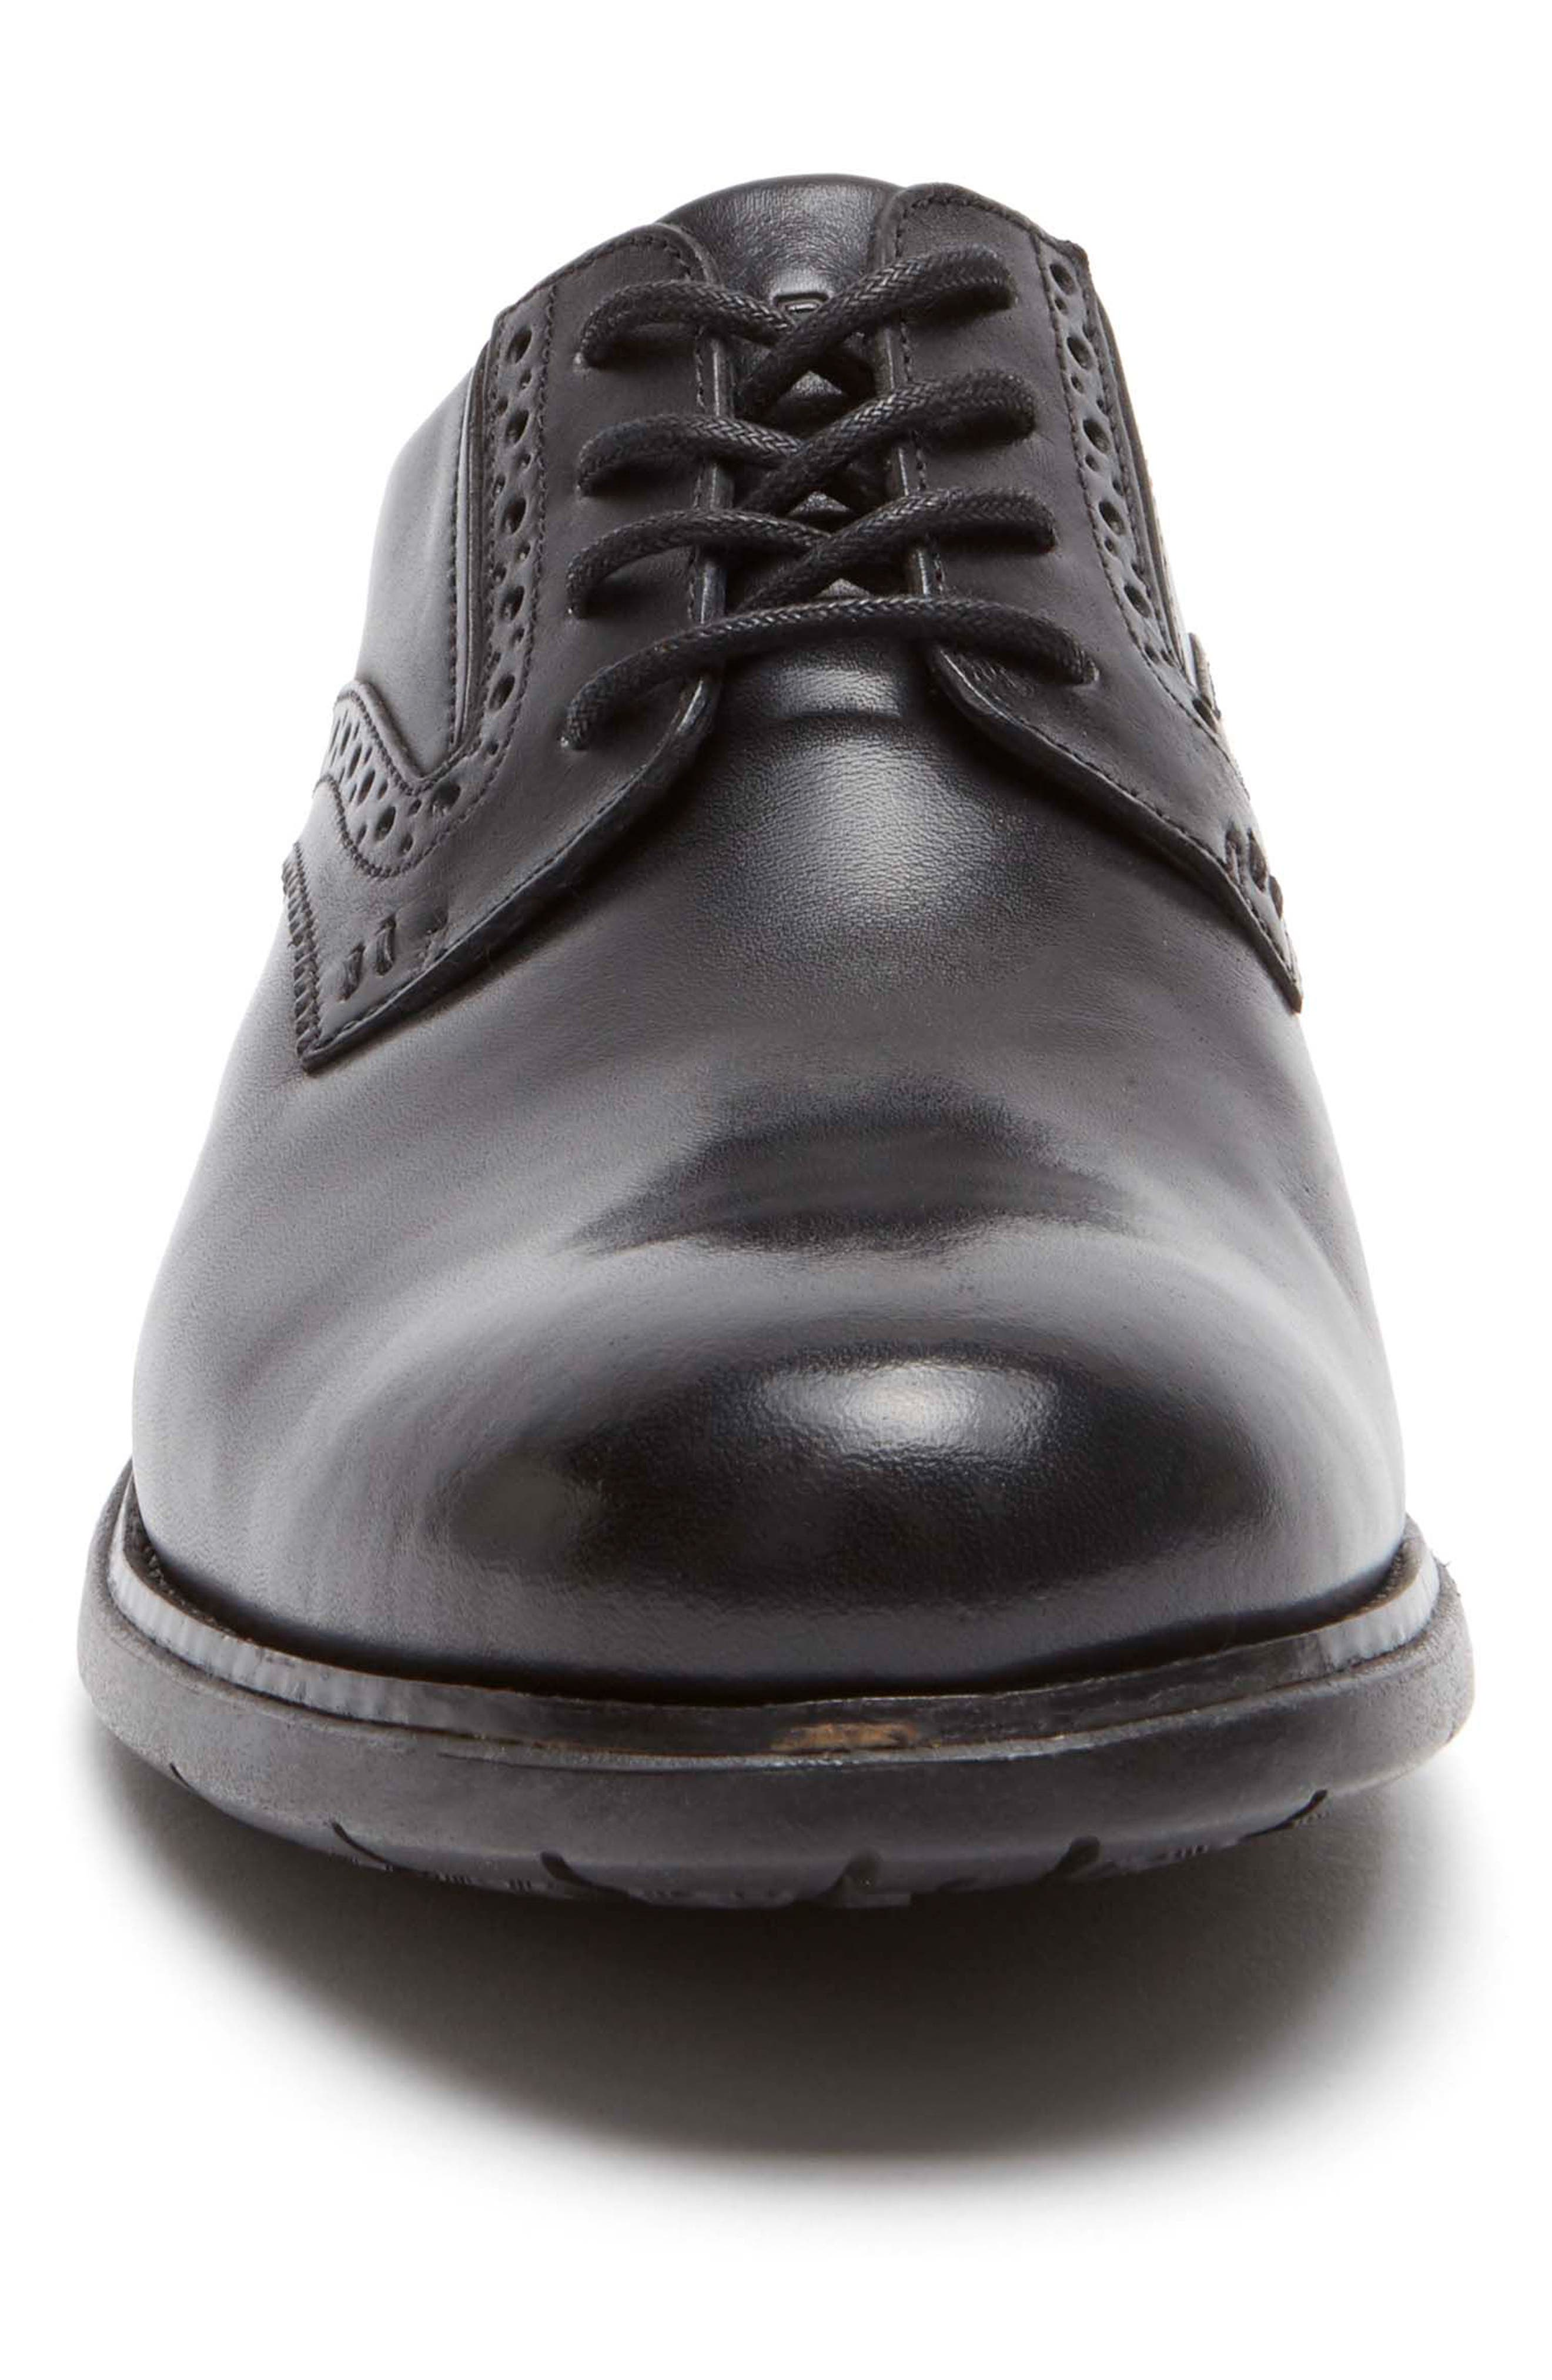 Total Motion Classic Dress Plain Toe Derby,                             Alternate thumbnail 4, color,                             Black Leather